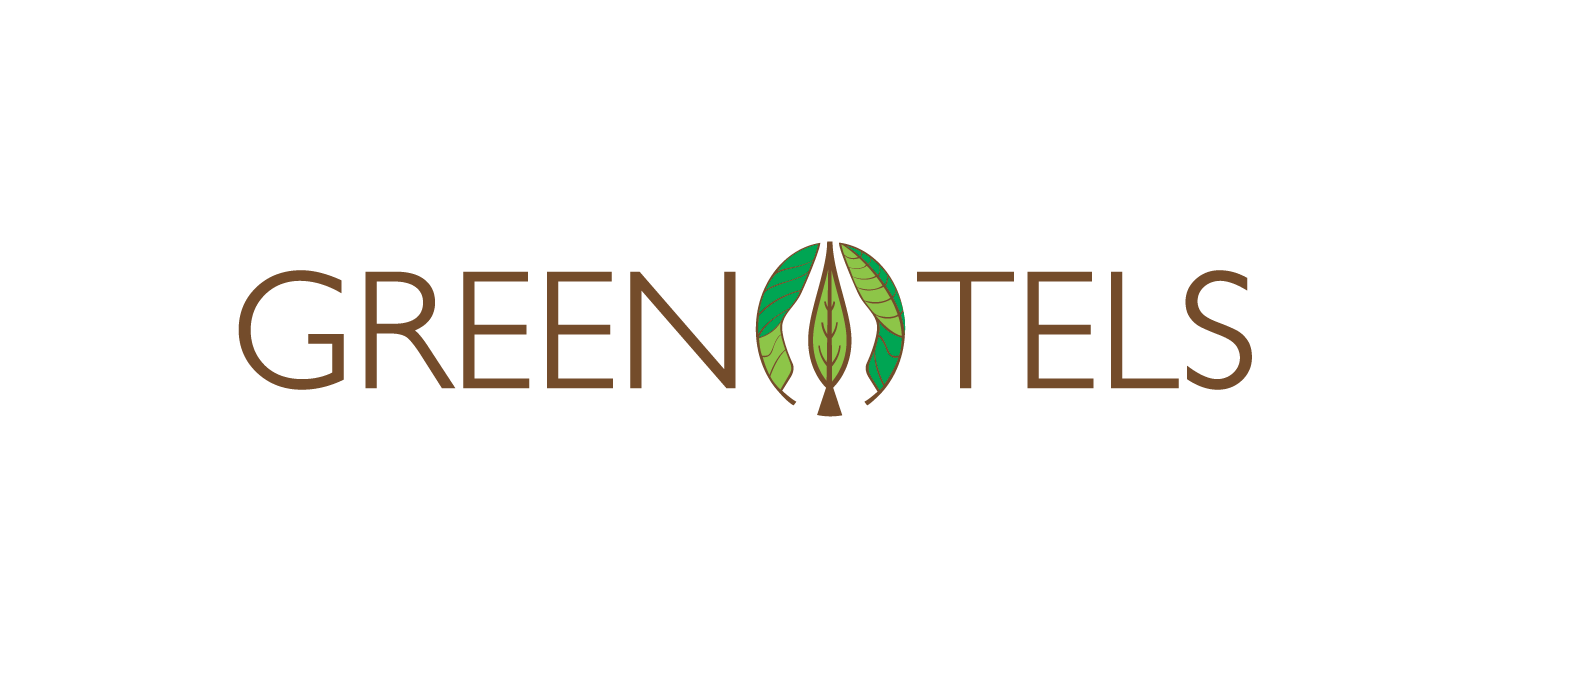 GreenOtels